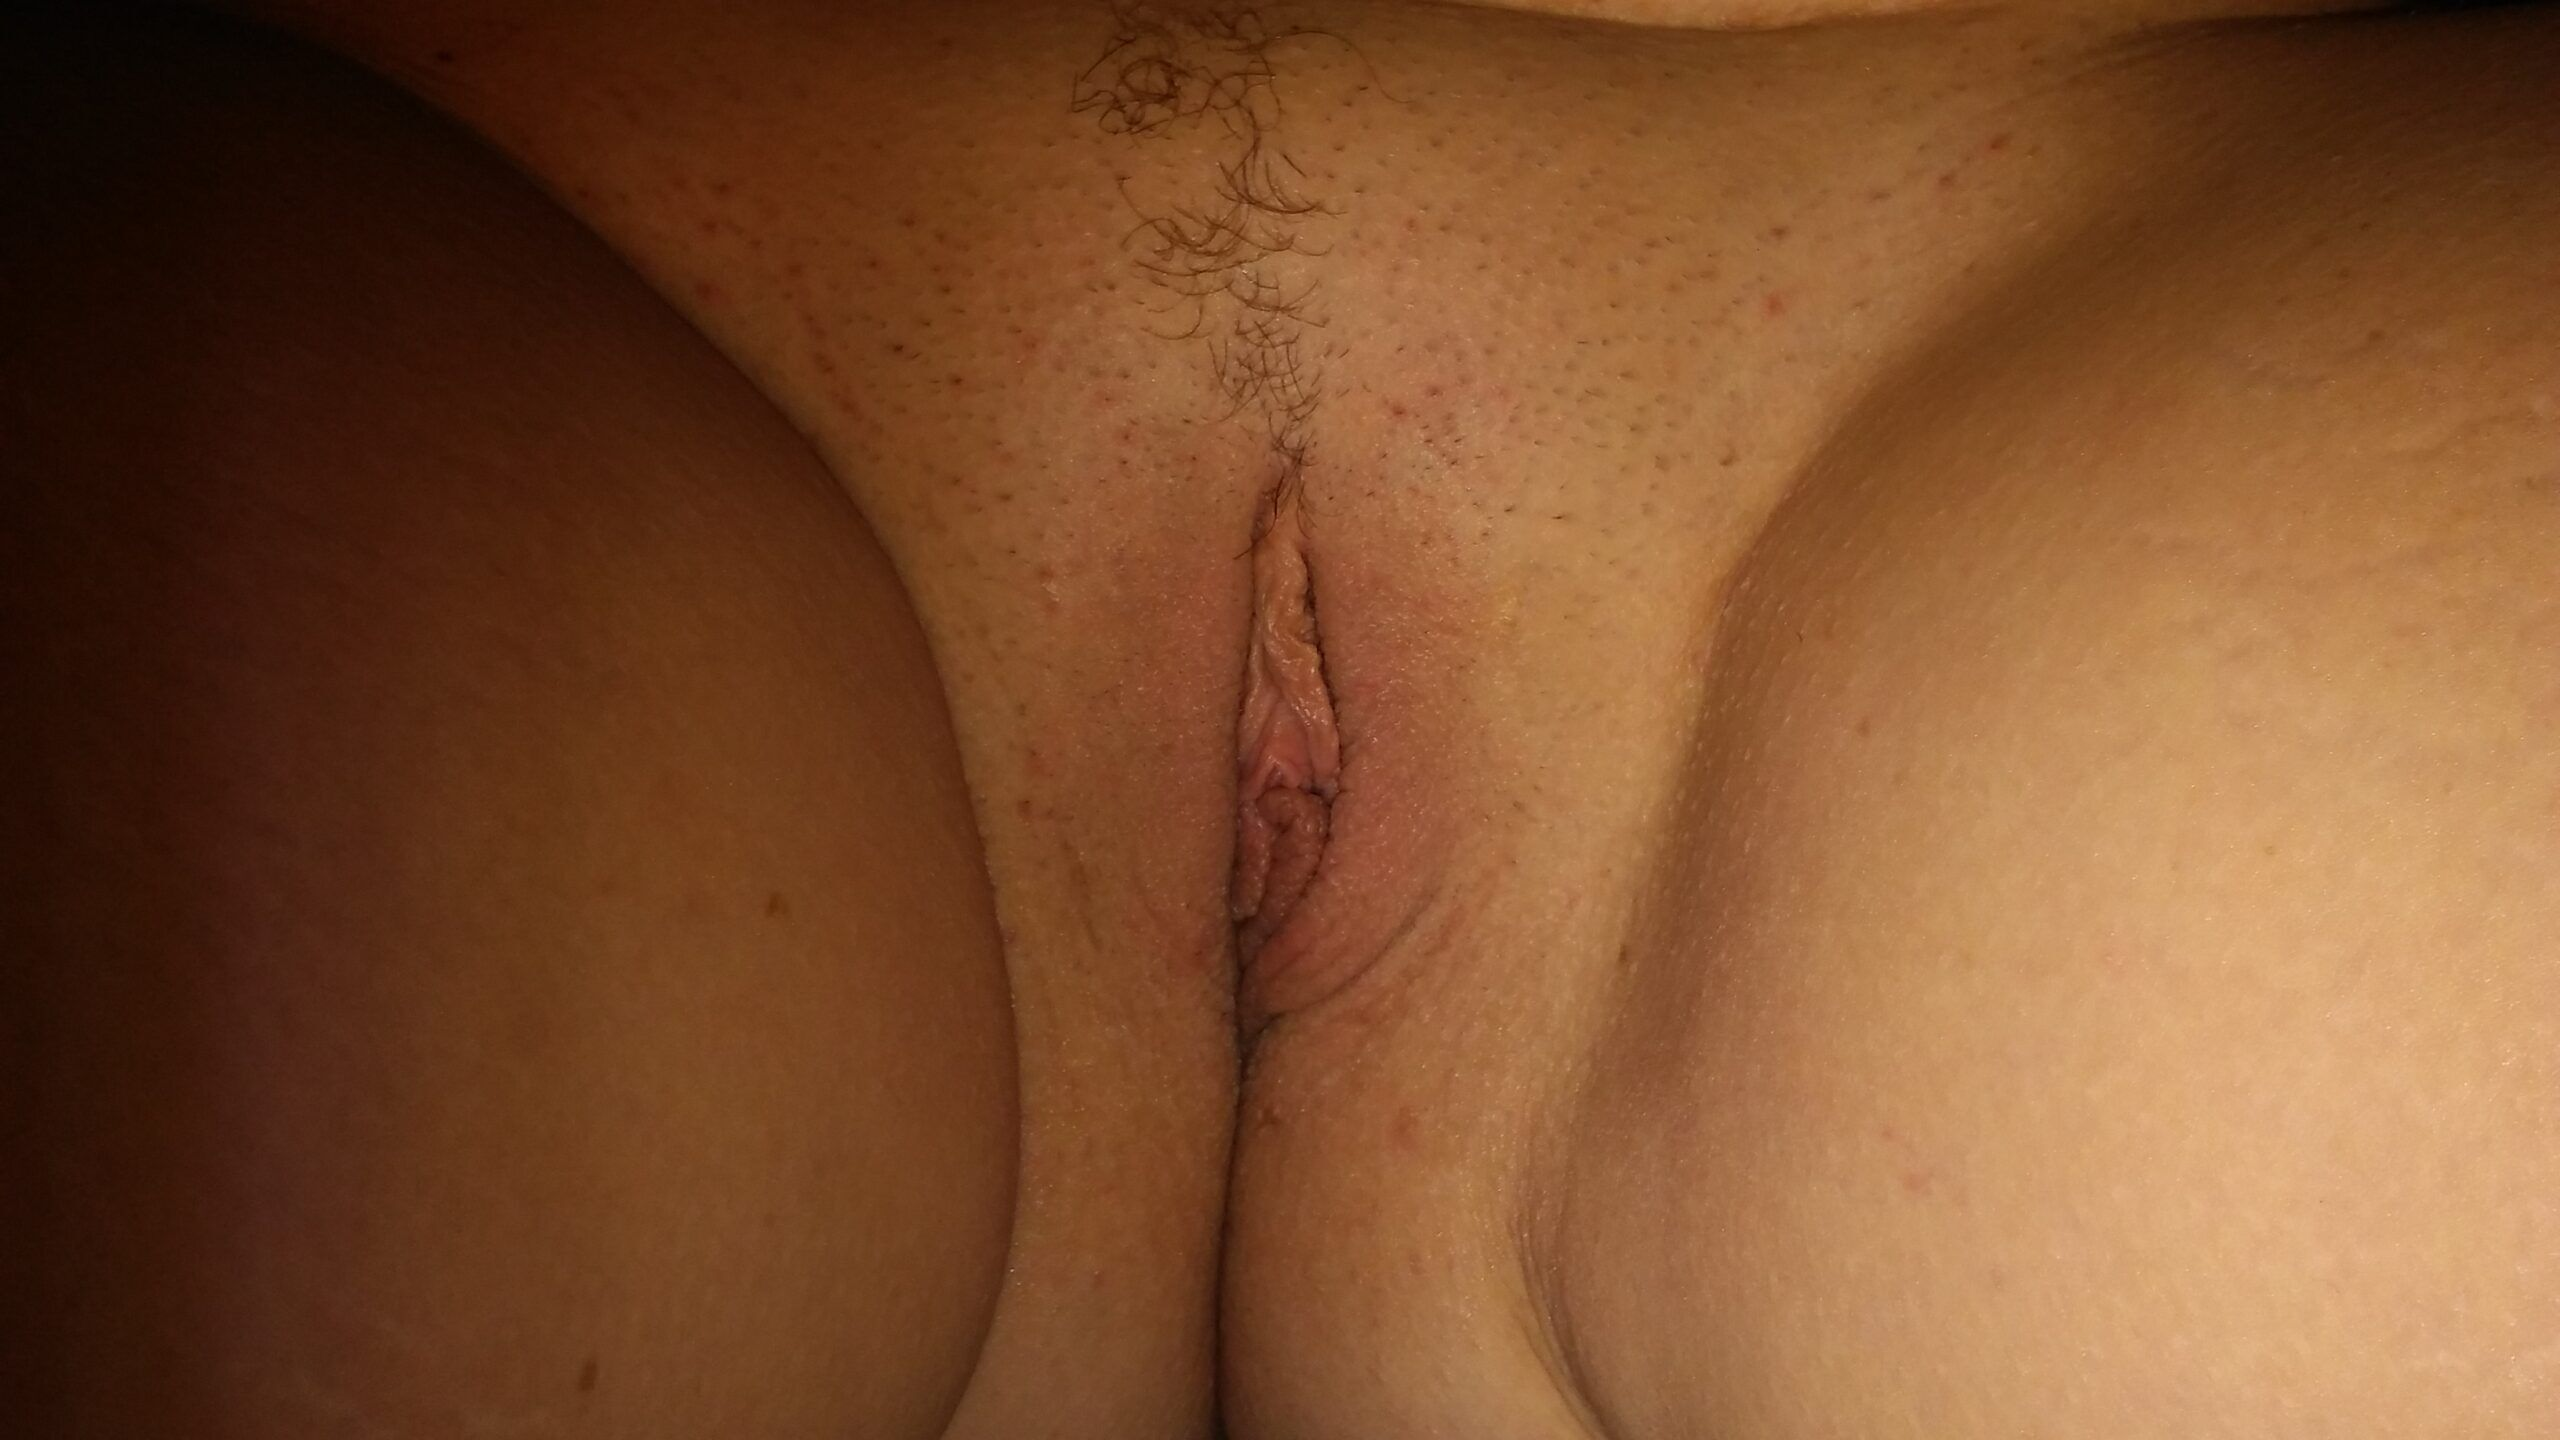 A closer look onto small twat real nudity pussy flash